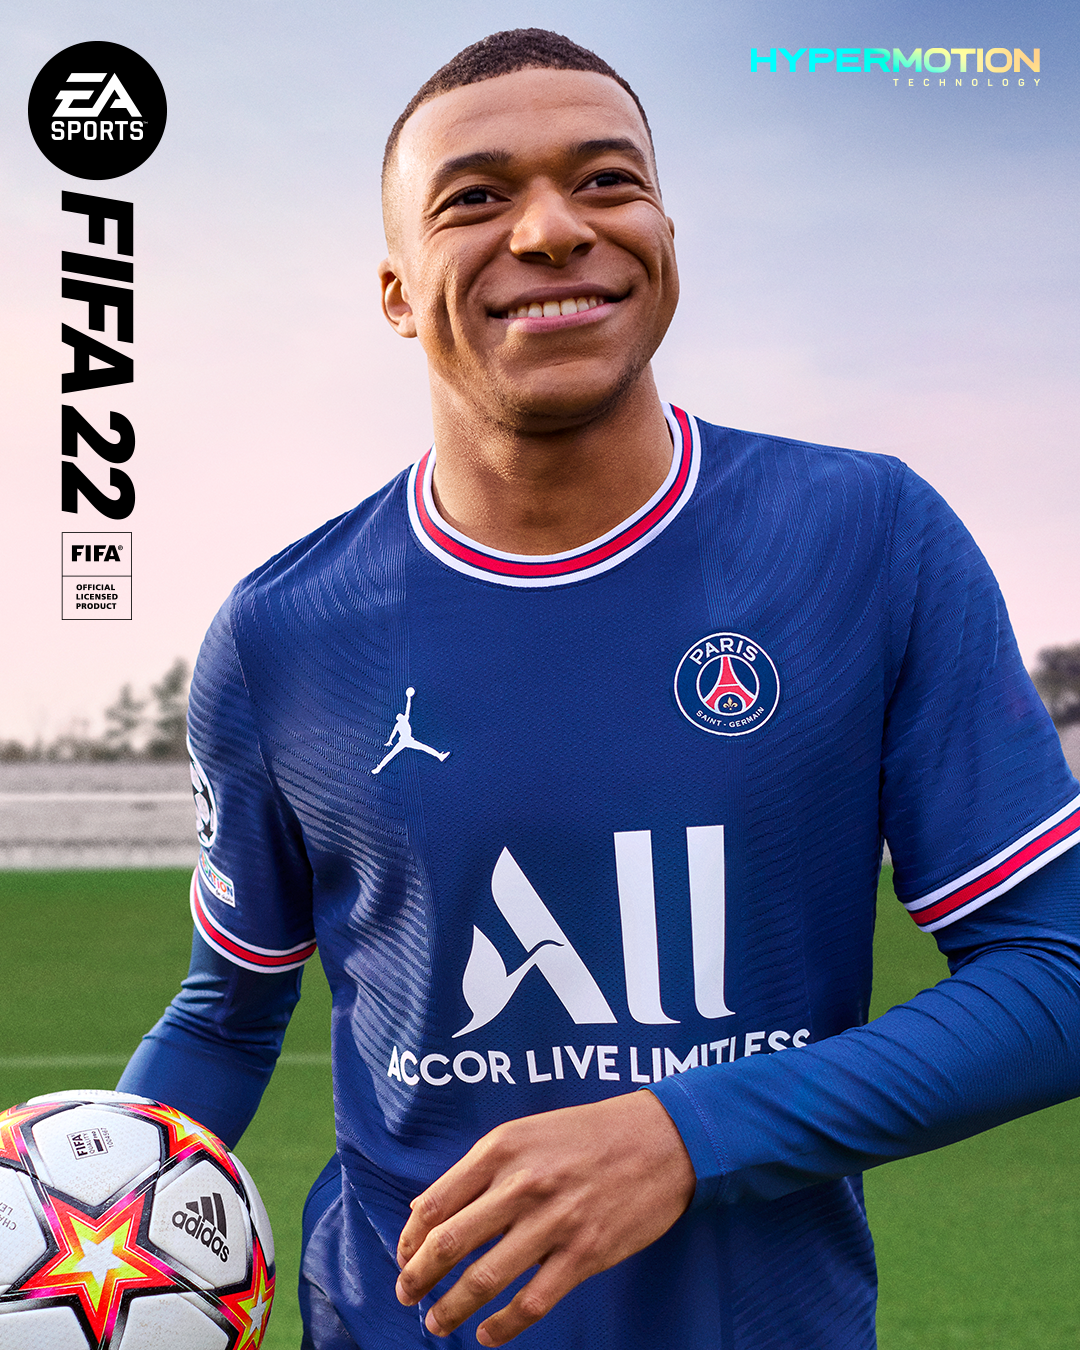 EA SPORTS INTRODUCES FIFA 22 WITH NEXT-GEN HYPERMOTION TECHNOLOGY, BRINGING FOOTBALL's MOST REALISTIC AND IMMERSIVE GAMEPLAY EXPERIENCE TO LIFE